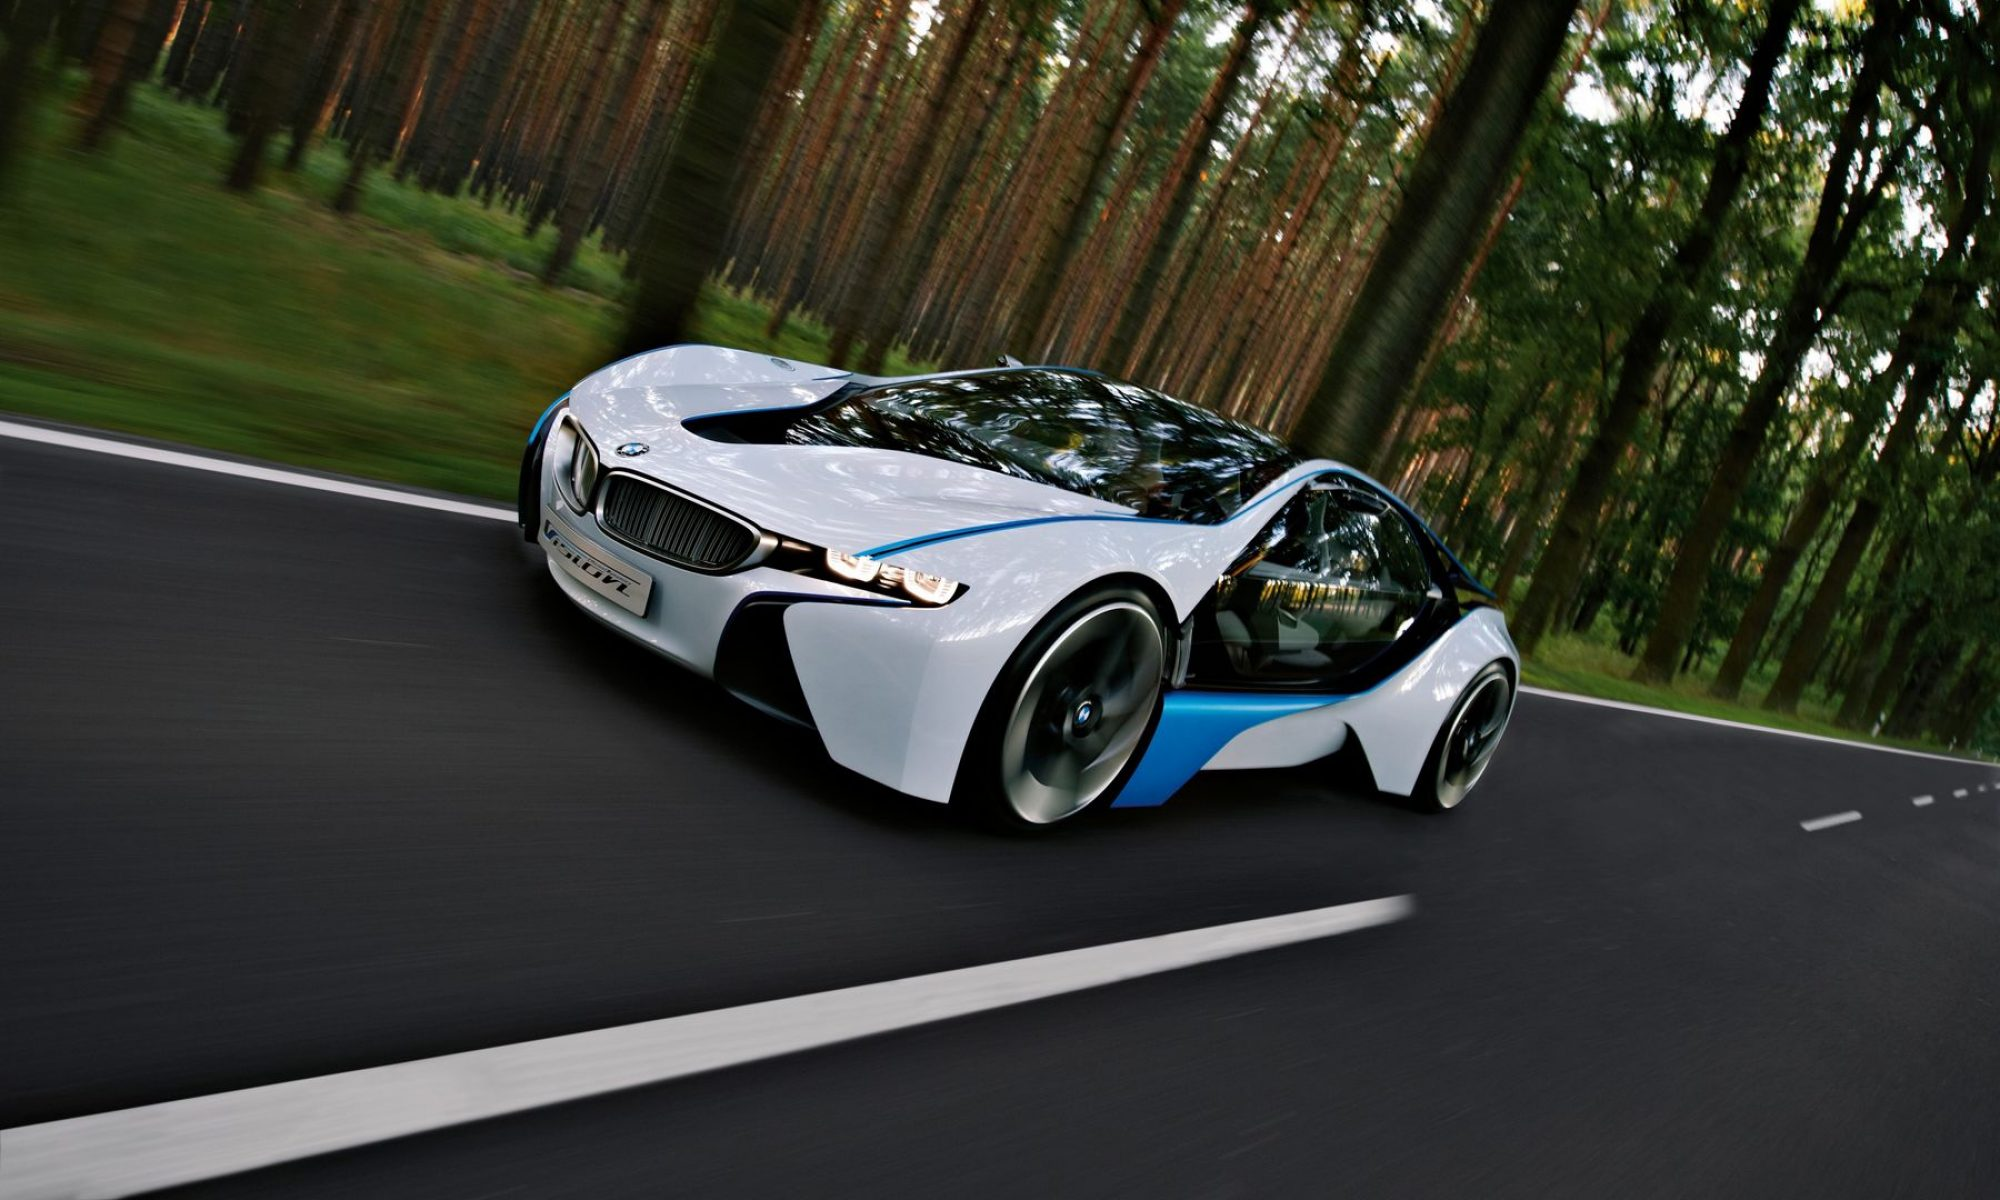 cropped-BMW-Vision-EfficientDynamics-Concept-40.jpg